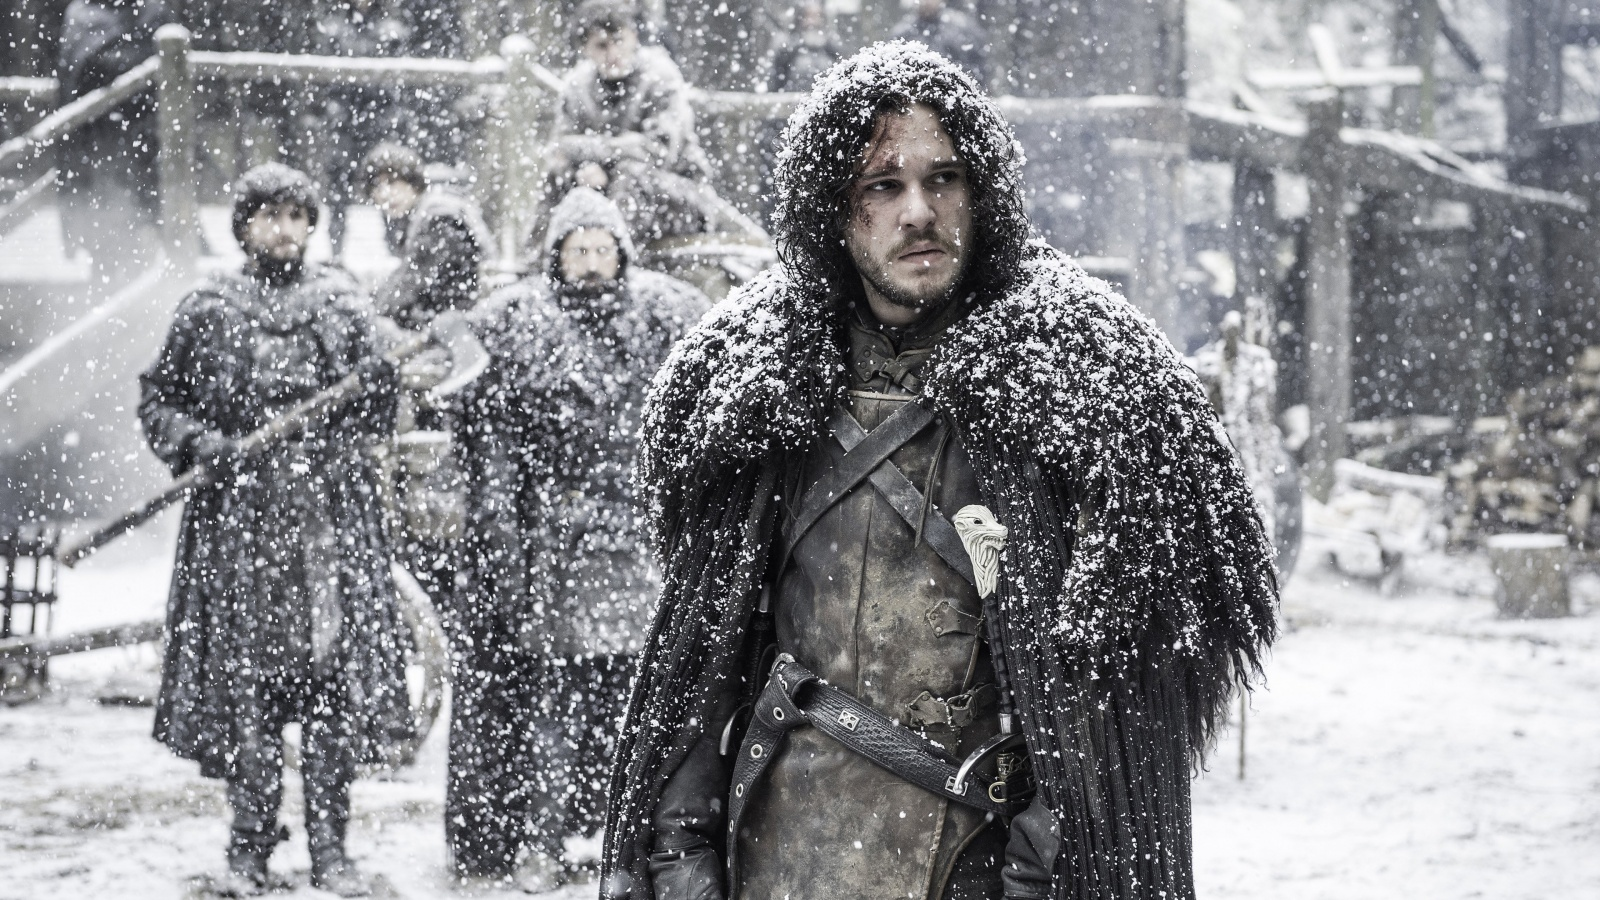 game of thrones free downloads all seasons